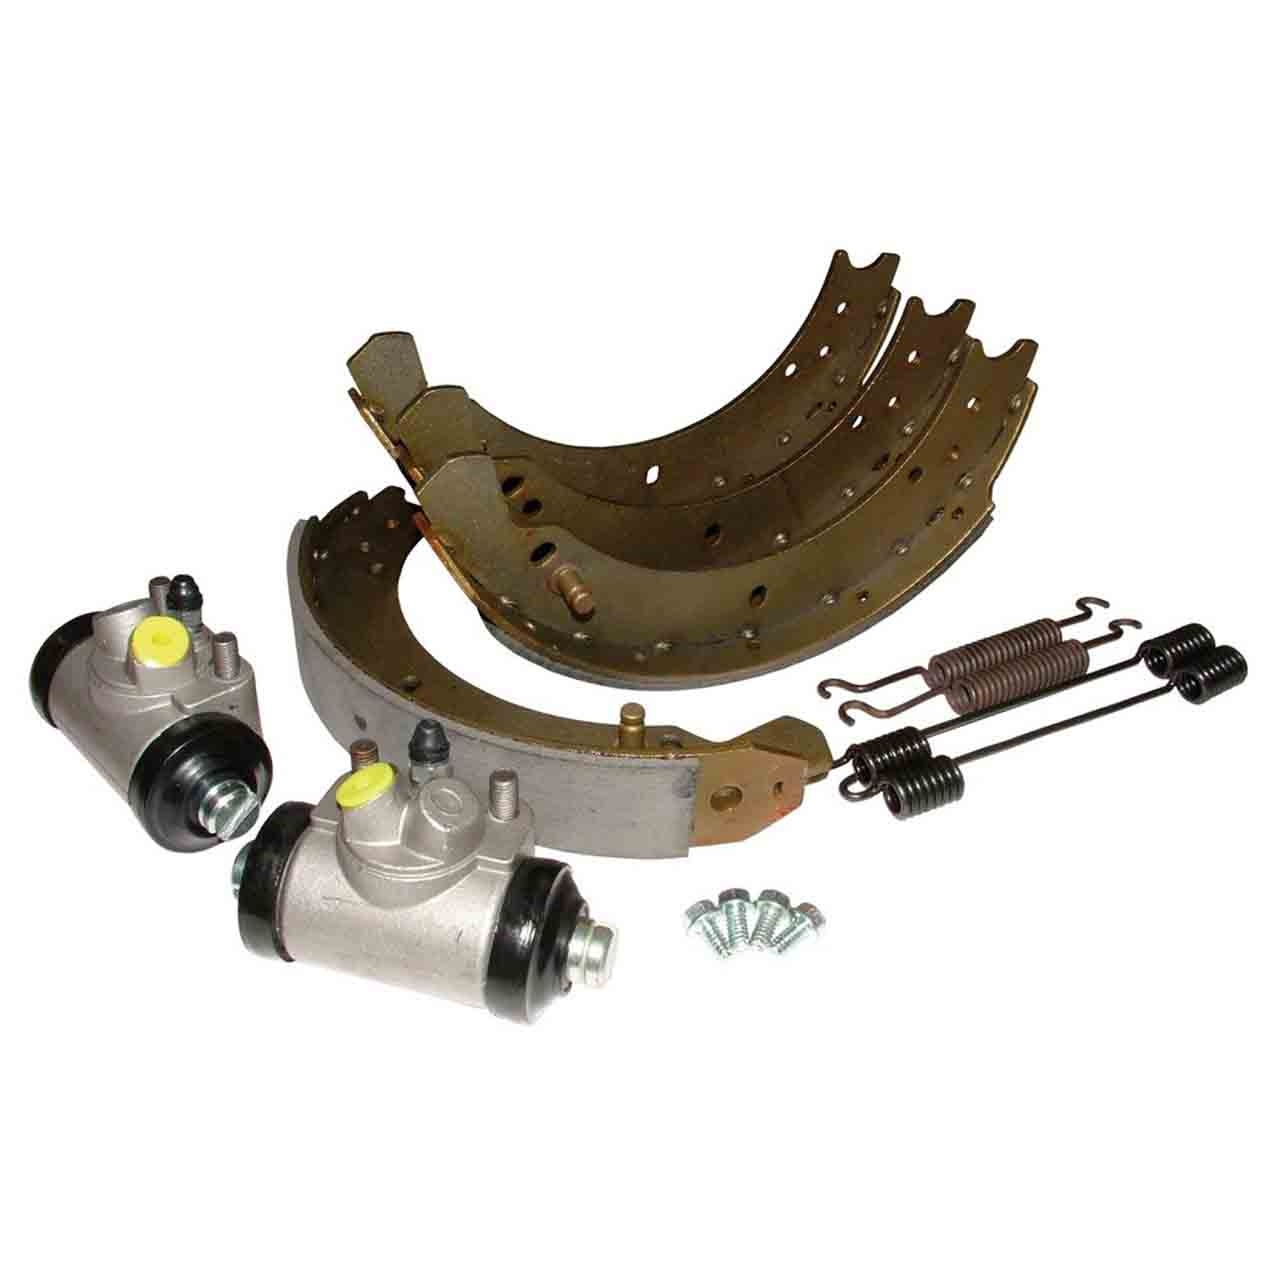 Kit Freno Posteriore Serie Series 1 2 3 Land Rover GR2-08230